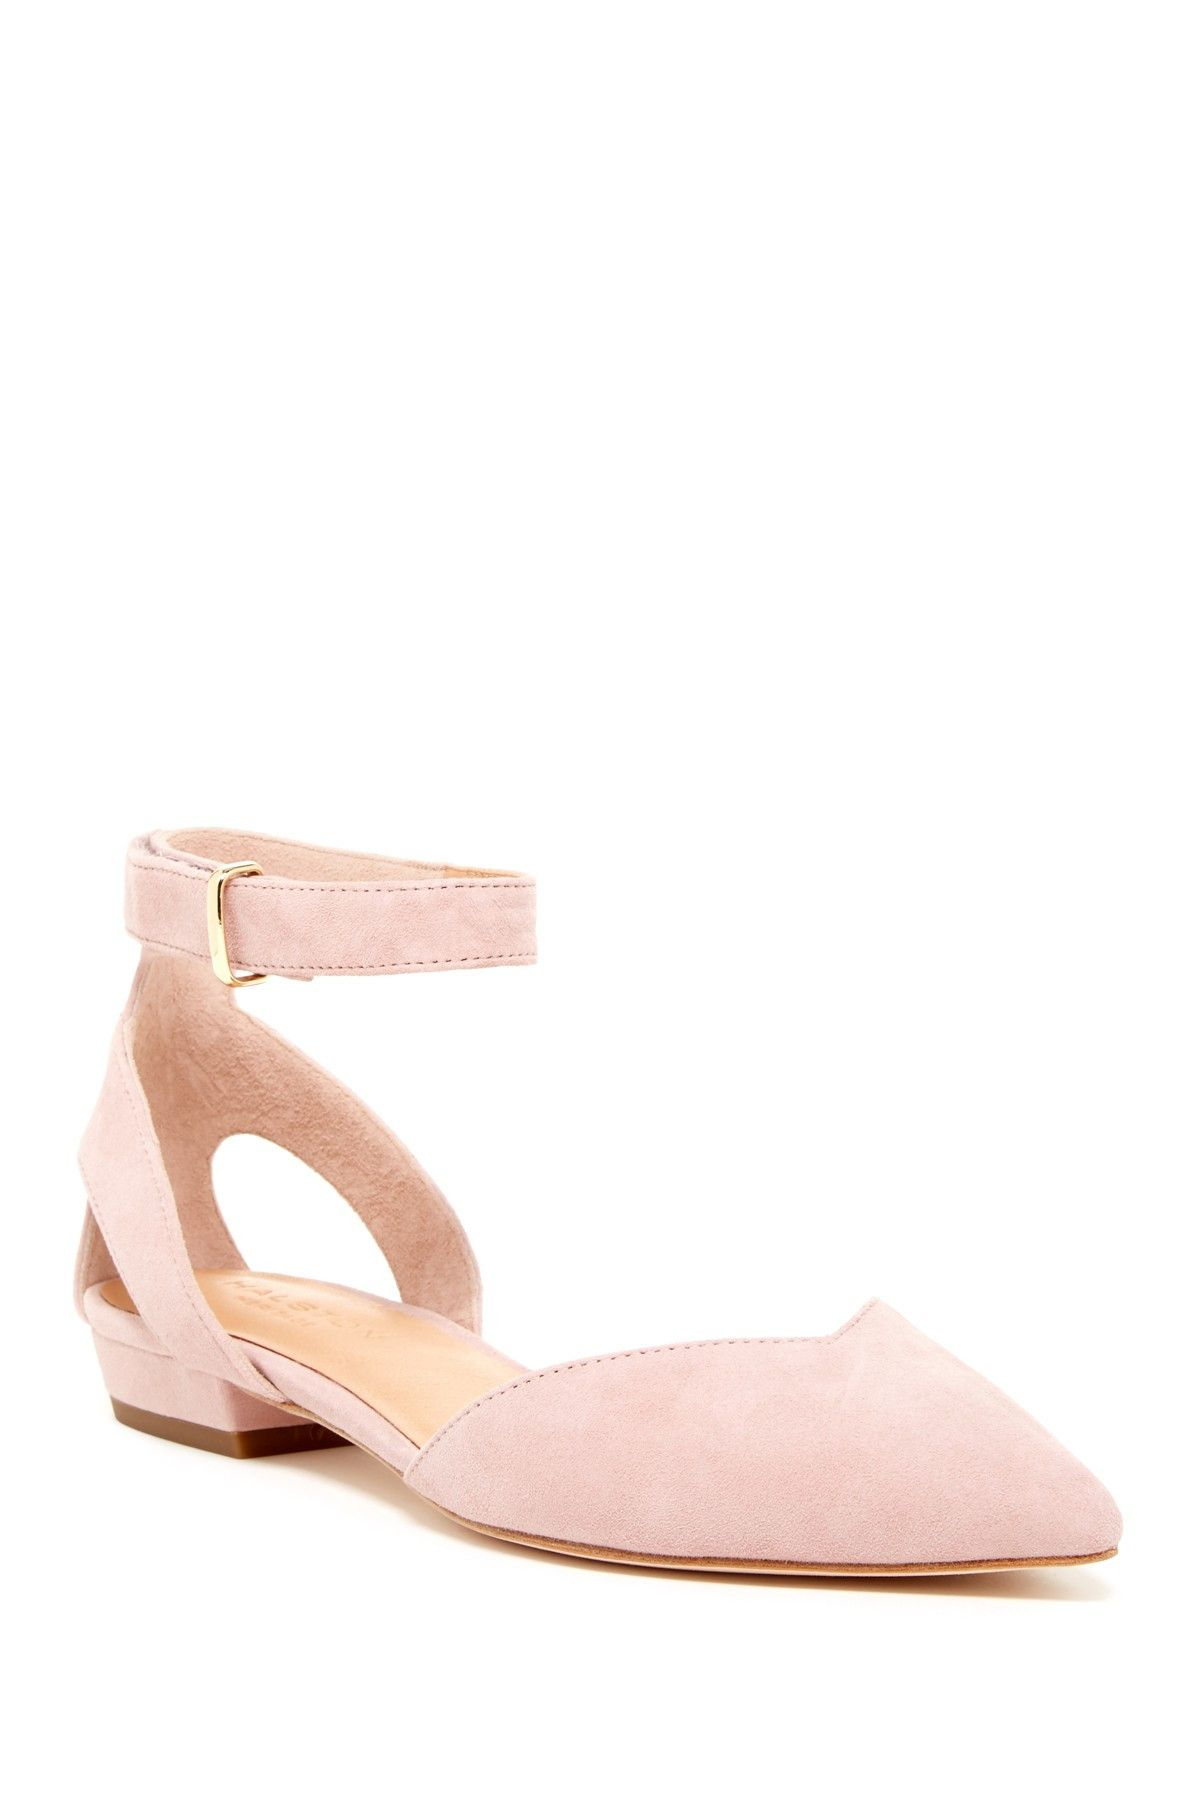 cd29c608933 So sweet! Blush pink Halston Heritage Jacqueline Ankle Strap Flats ...